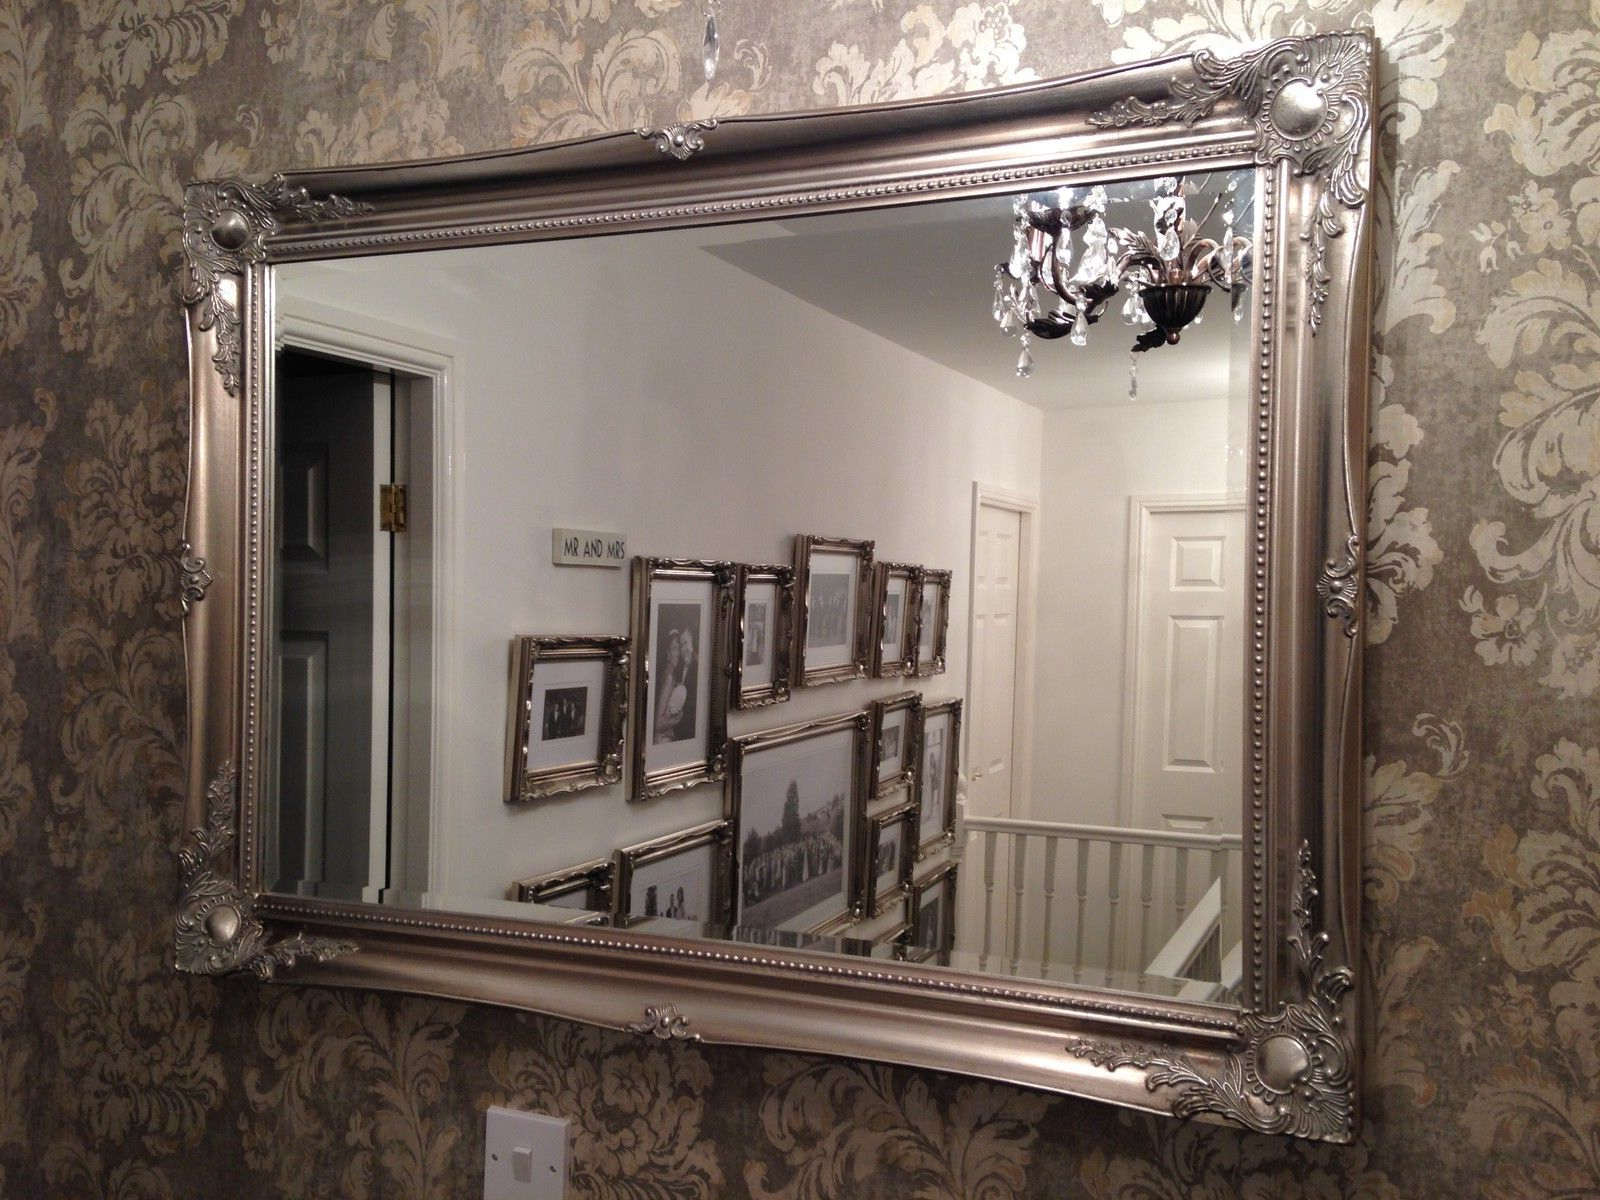 Latest Oversized Rustic Wall Mirrors In Sterling Wade Abigail Round Large Inside Large Rustic Wall Mirrors (View 16 of 20)